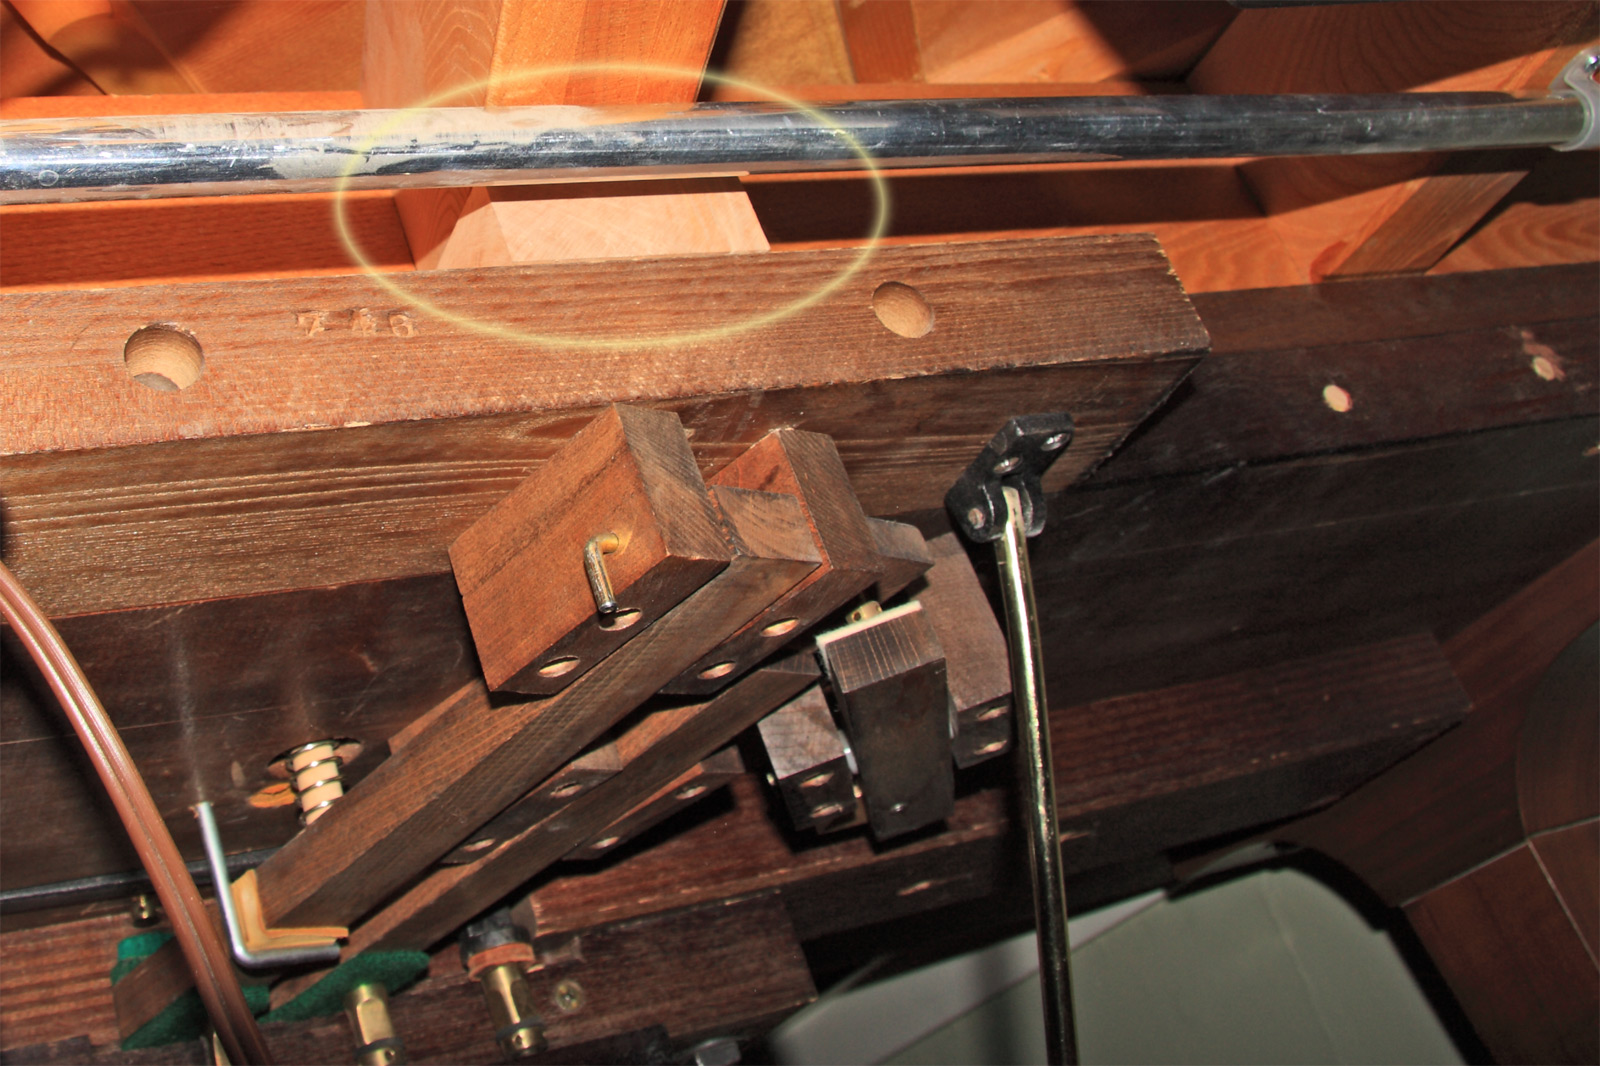 and again - the solid wood bracing to stop Lyre torque has been circled.